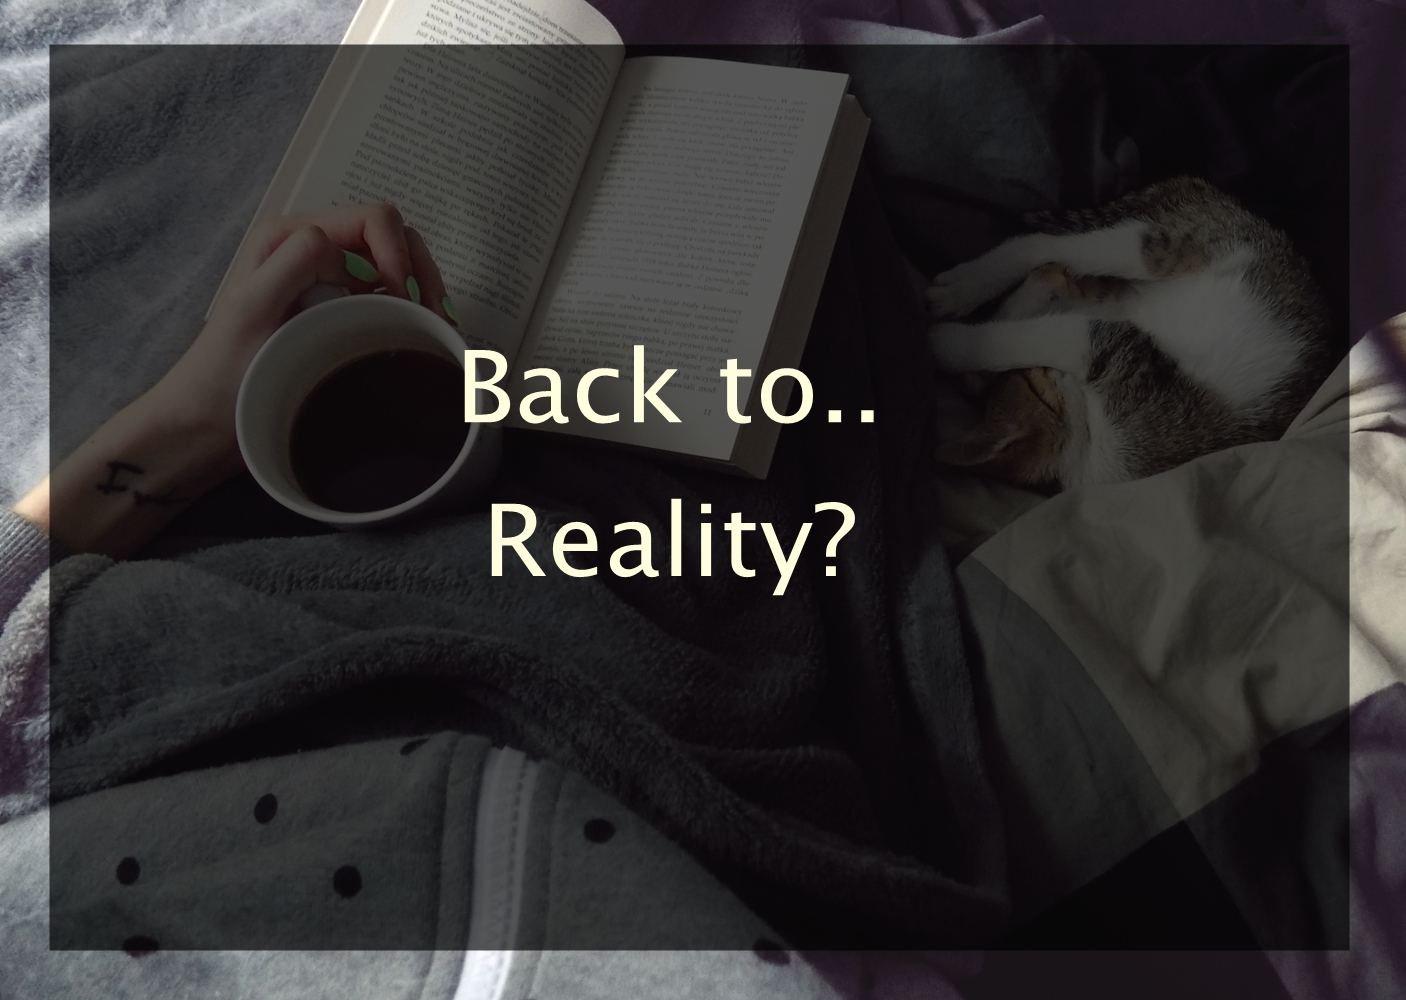 #19 Back to.. reality!